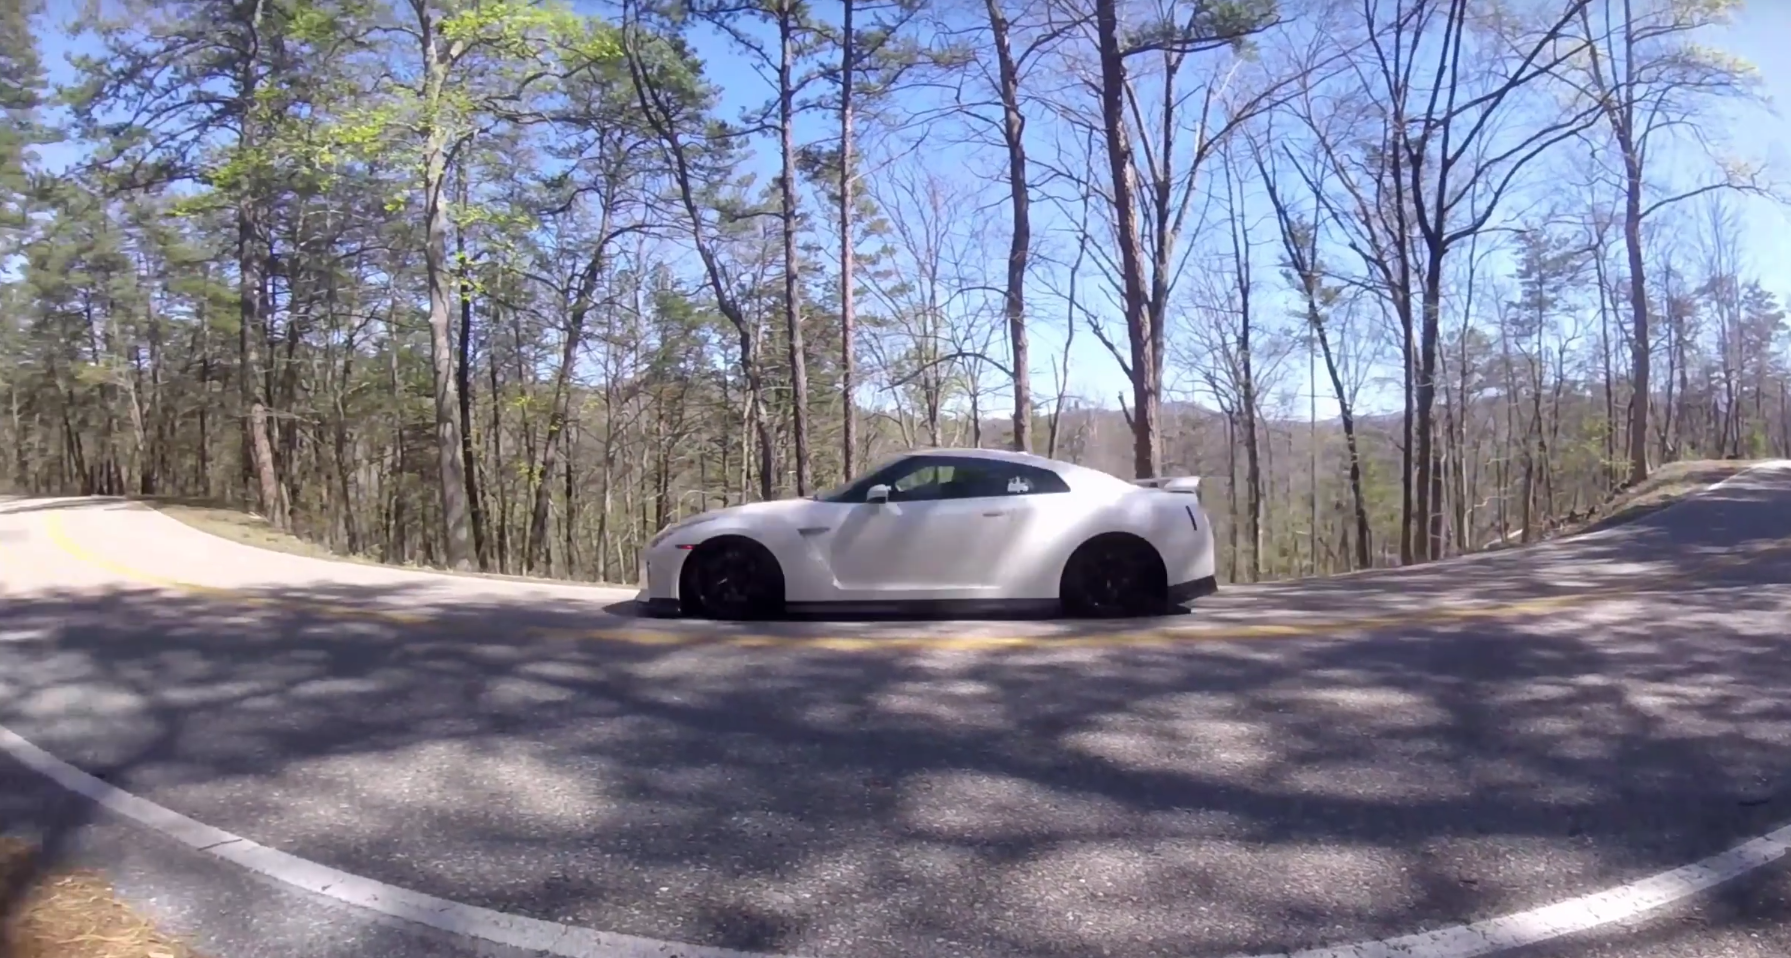 Nissan GT-R Driver Loses Control On Mountain Road